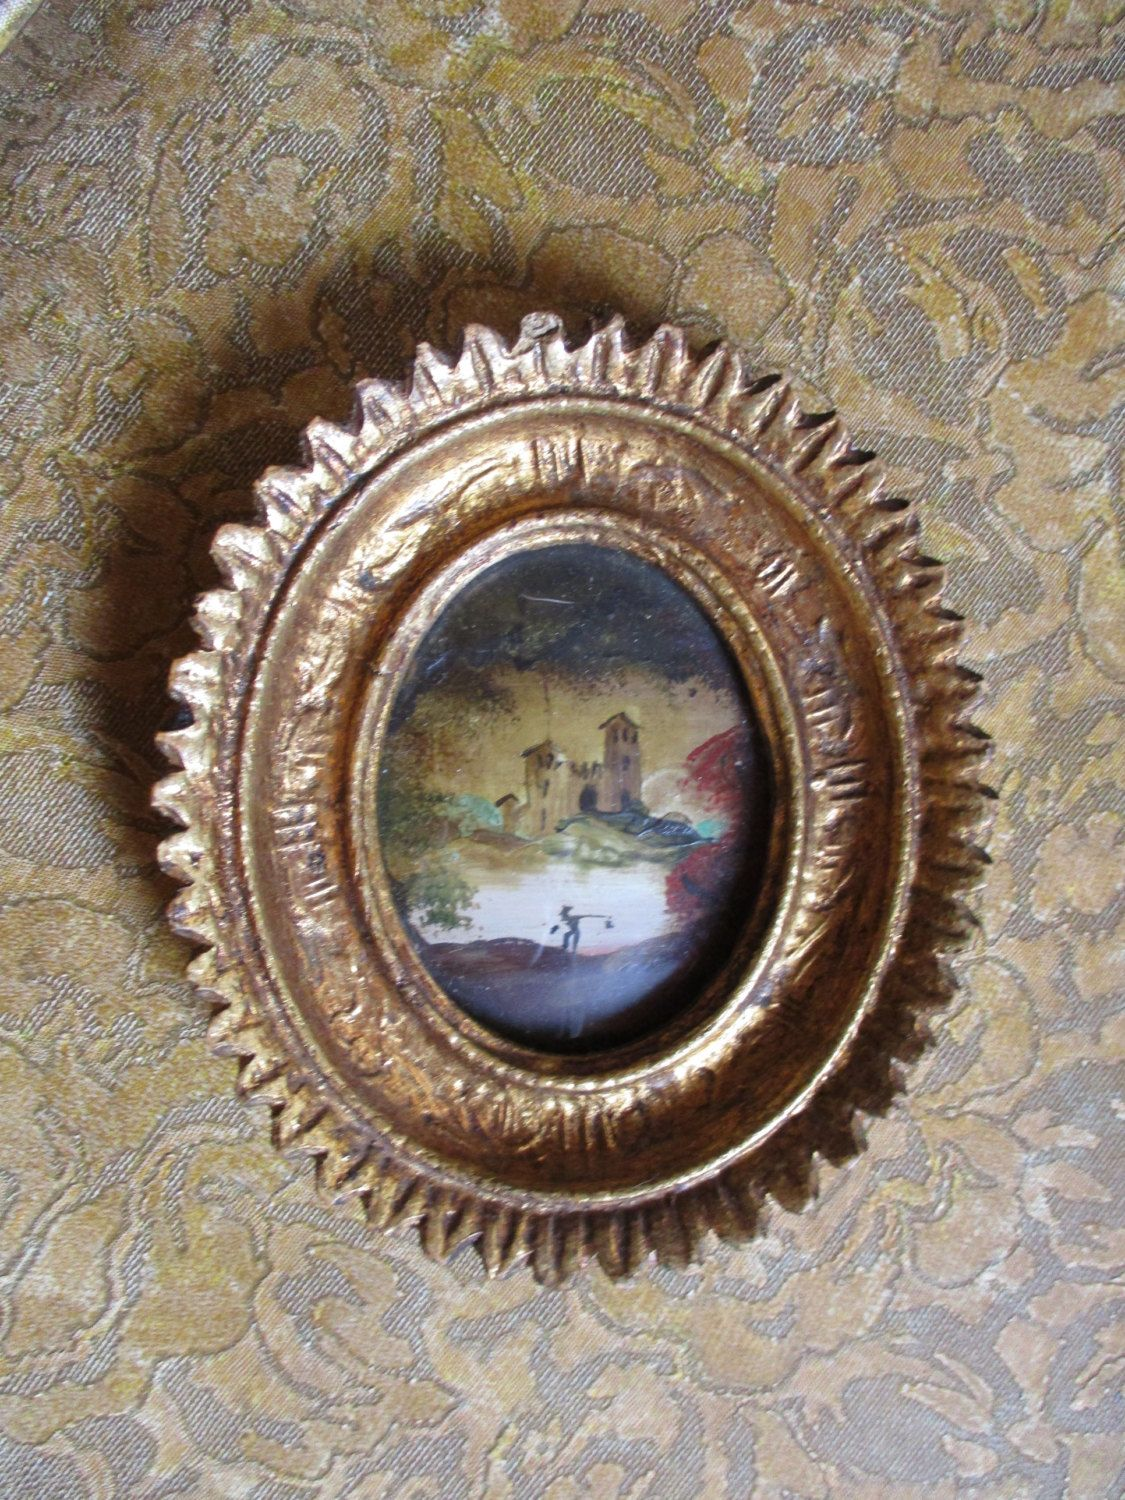 Hold for kacey vtg ornate small gold gesso style victorian framed hold for kacey vtg ornate small gold gesso style victorian framed florentine look castle by water painting convex bubble glass picture frame jeuxipadfo Image collections